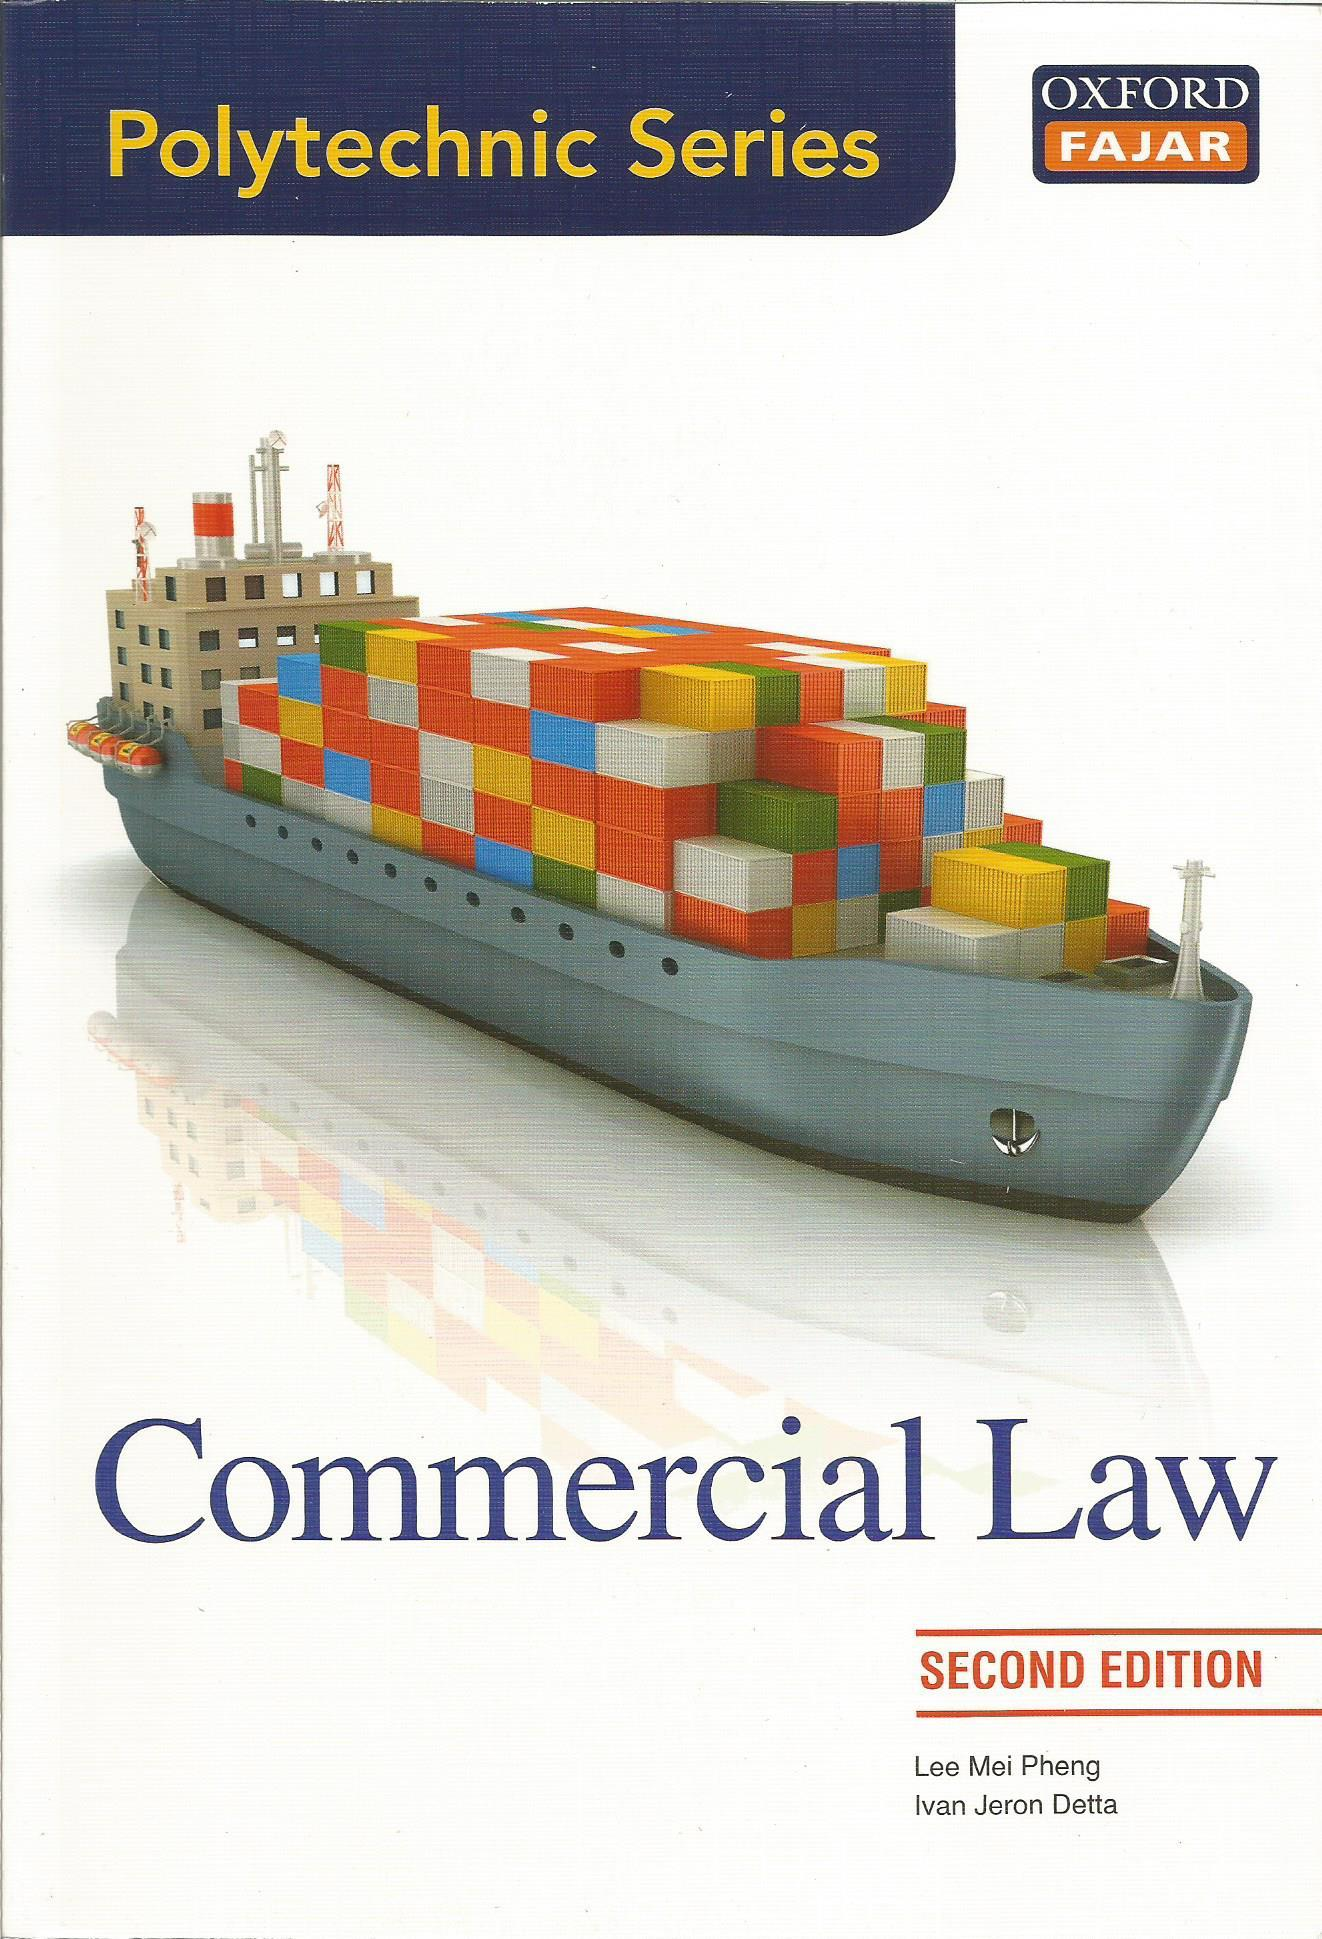 commercial law rm31.9 0.440001.jpg